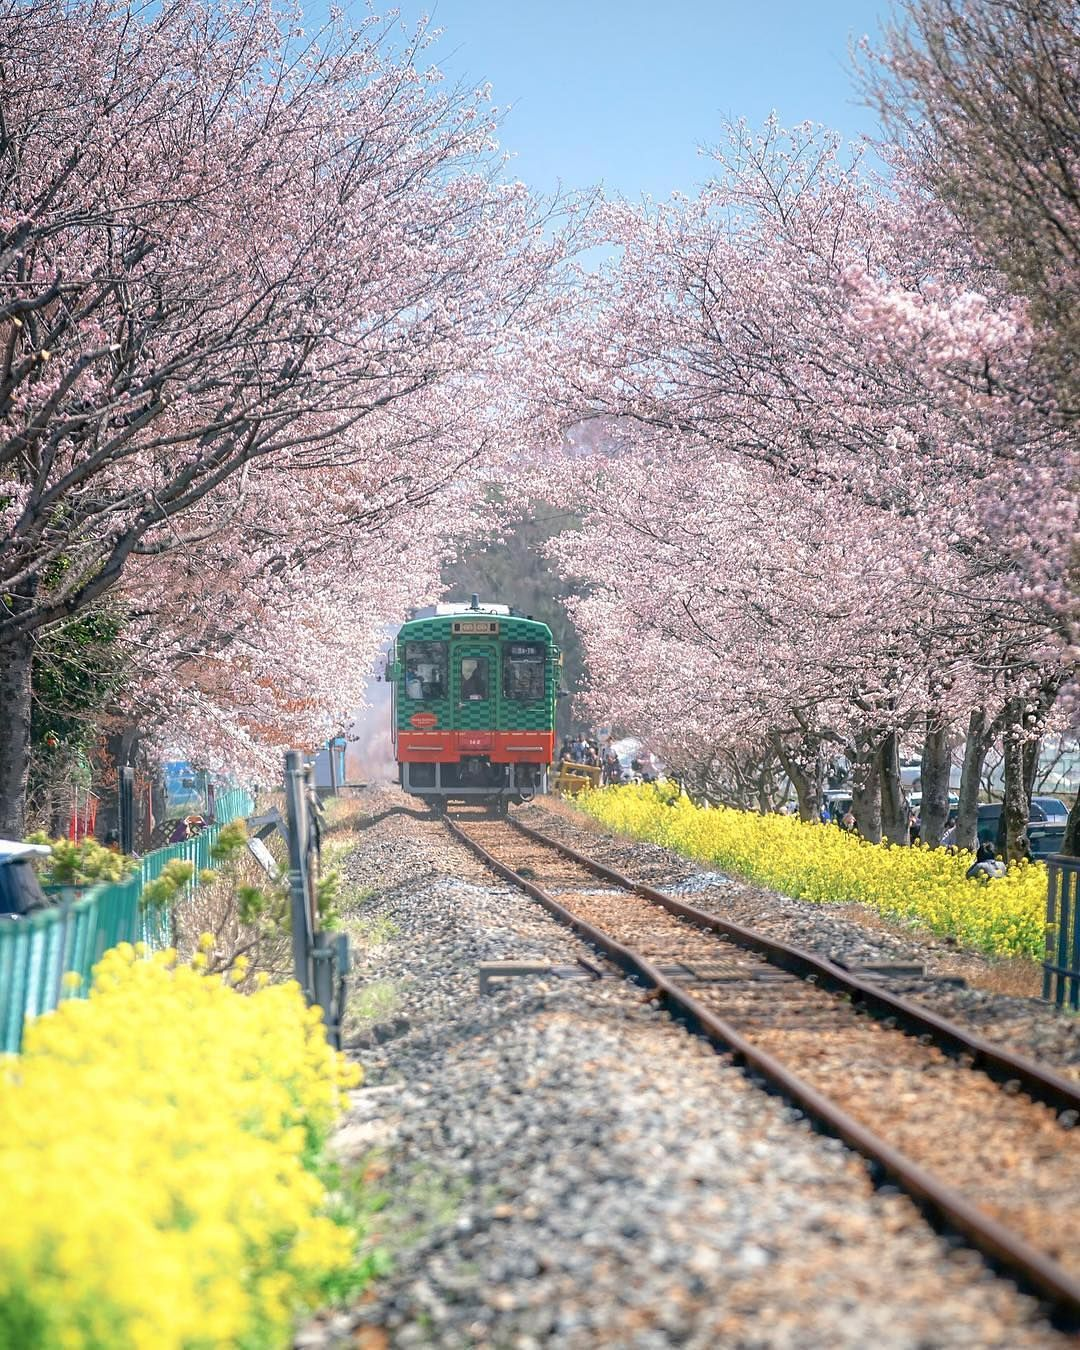 Japan Travel Moka In Tochigi Prefecture Is One Of The Lesser Known Sakura Spots With A Cherr Cherryblossom I Japan Travel Japan Train Japan Vacation